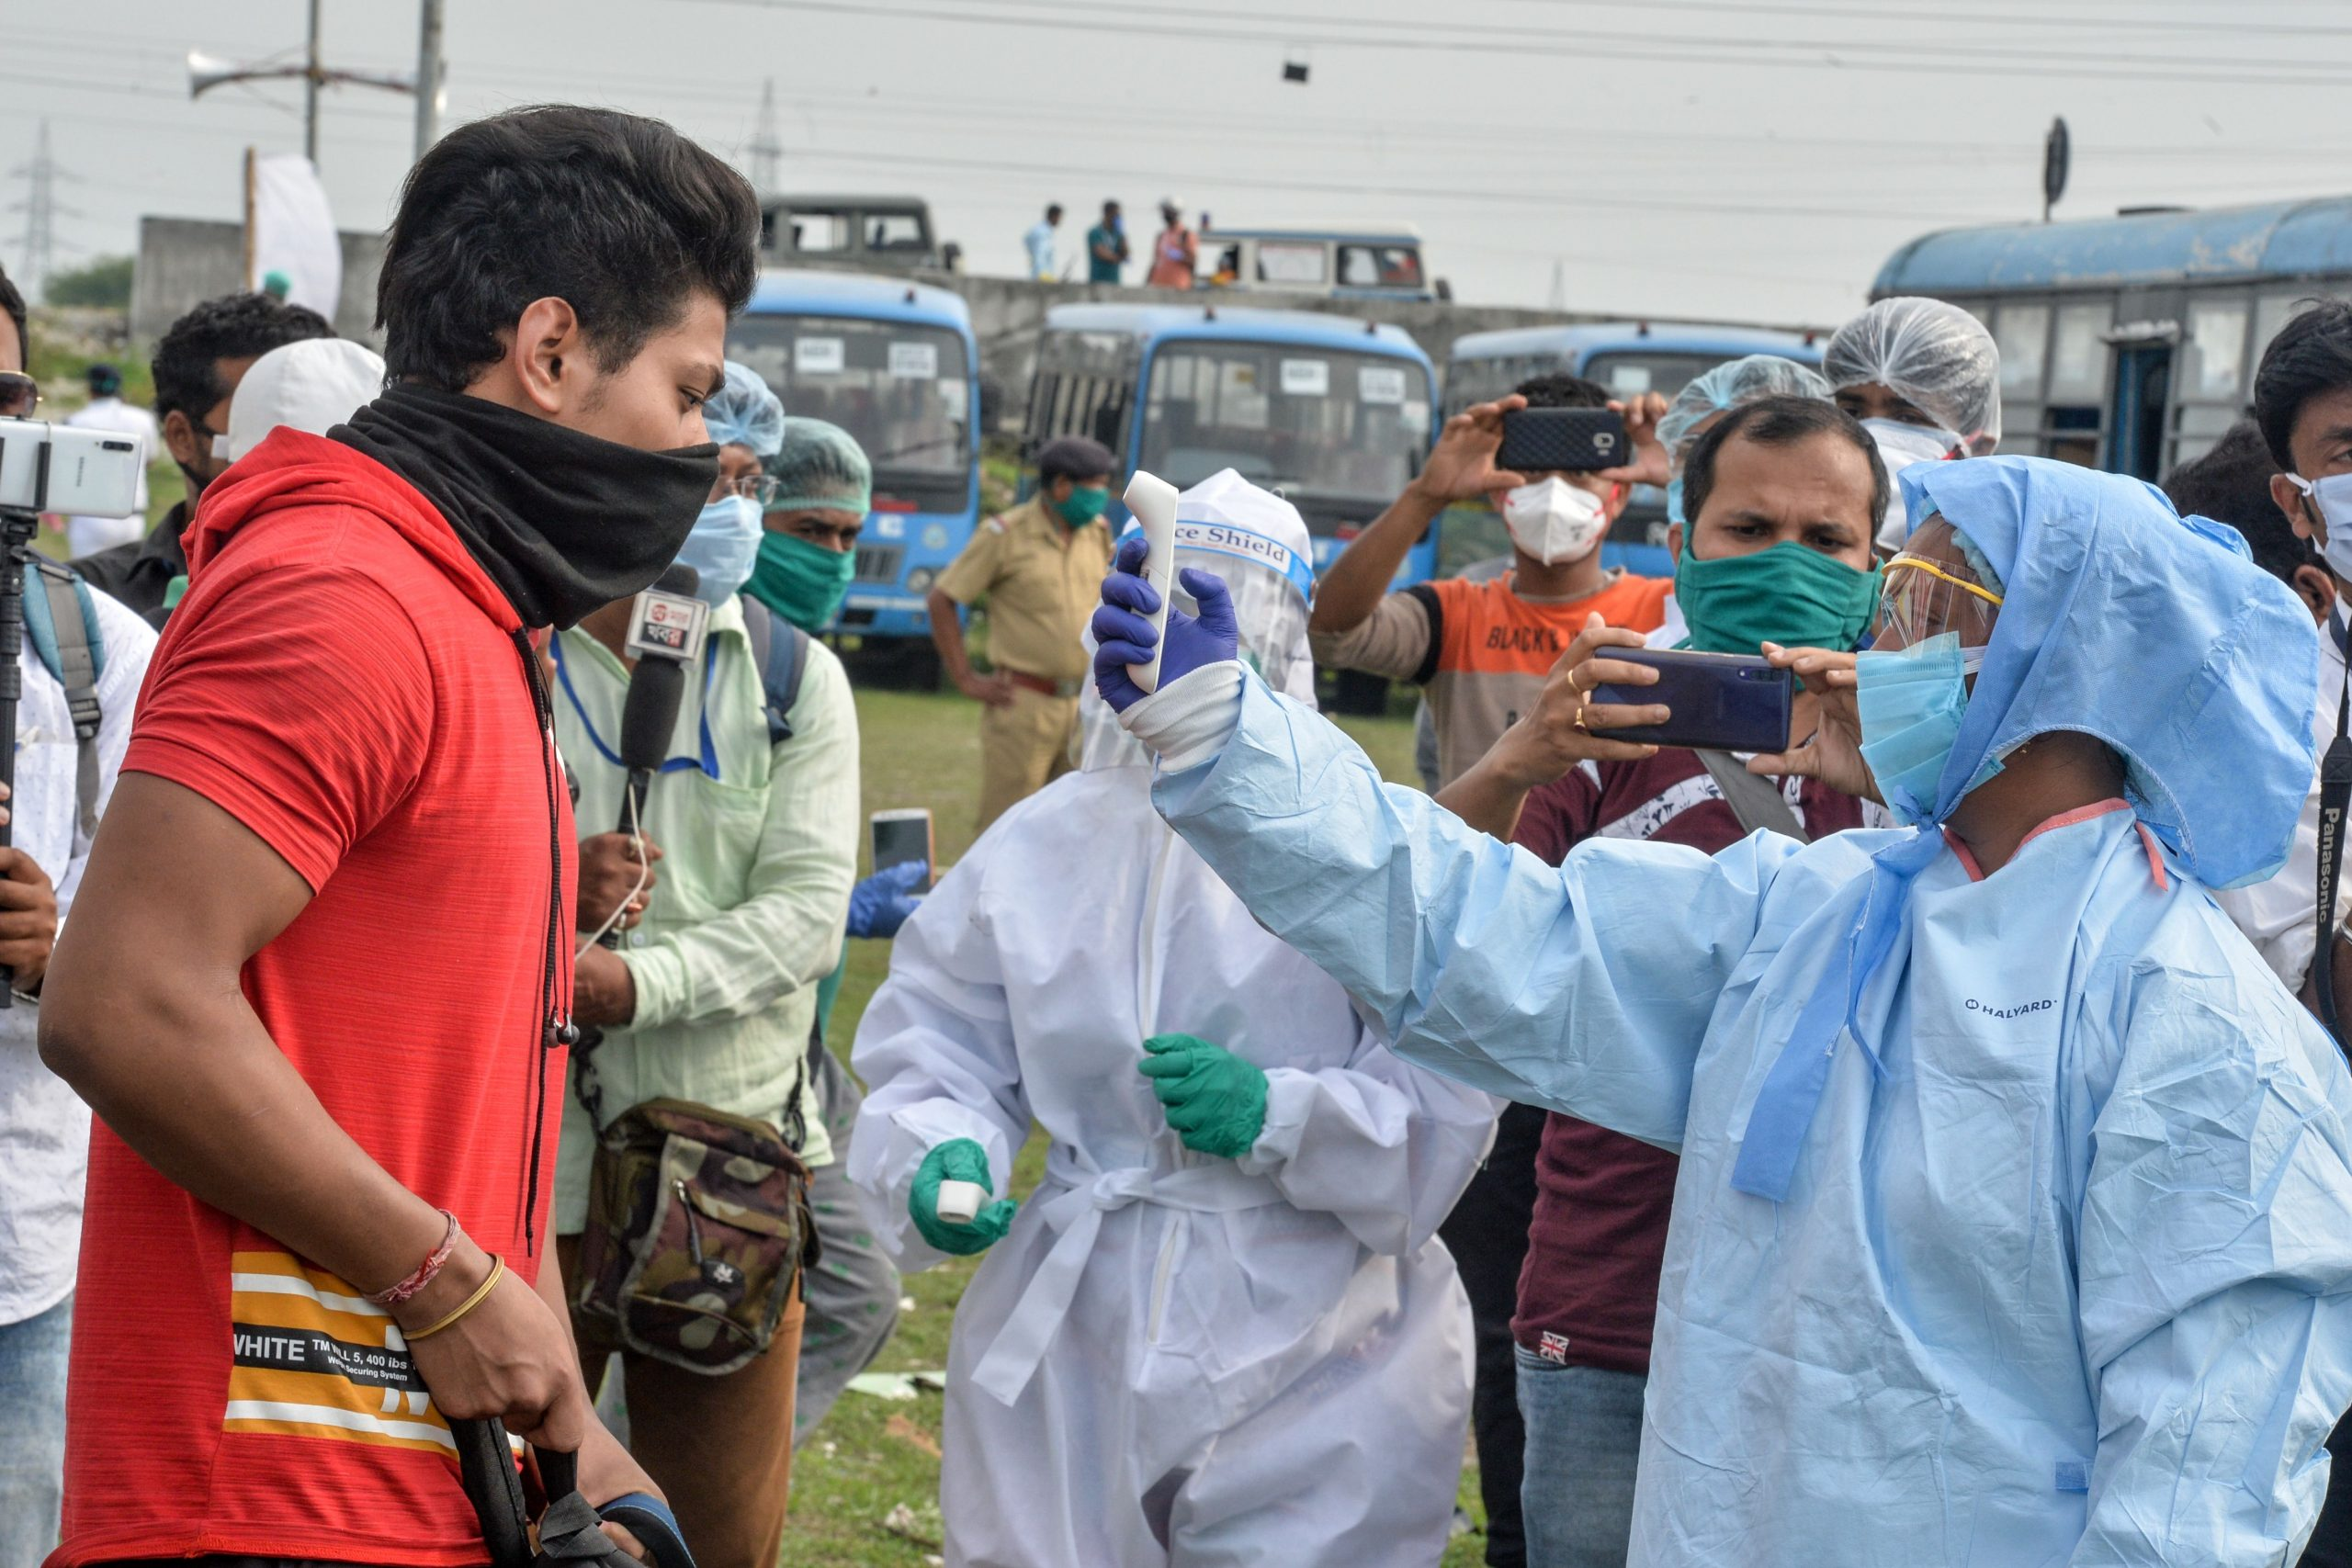 A health worker (R) checks the body temperature of a student after he arrived with others by bus from other states to their home in West Bengal state during a government-imposed nationwide lockdown as a preventive measure against the COVID-19 coronavirus, in Siliguri on May 1, 2020. (Photo by DIPTENDU DUTTA / AFP)